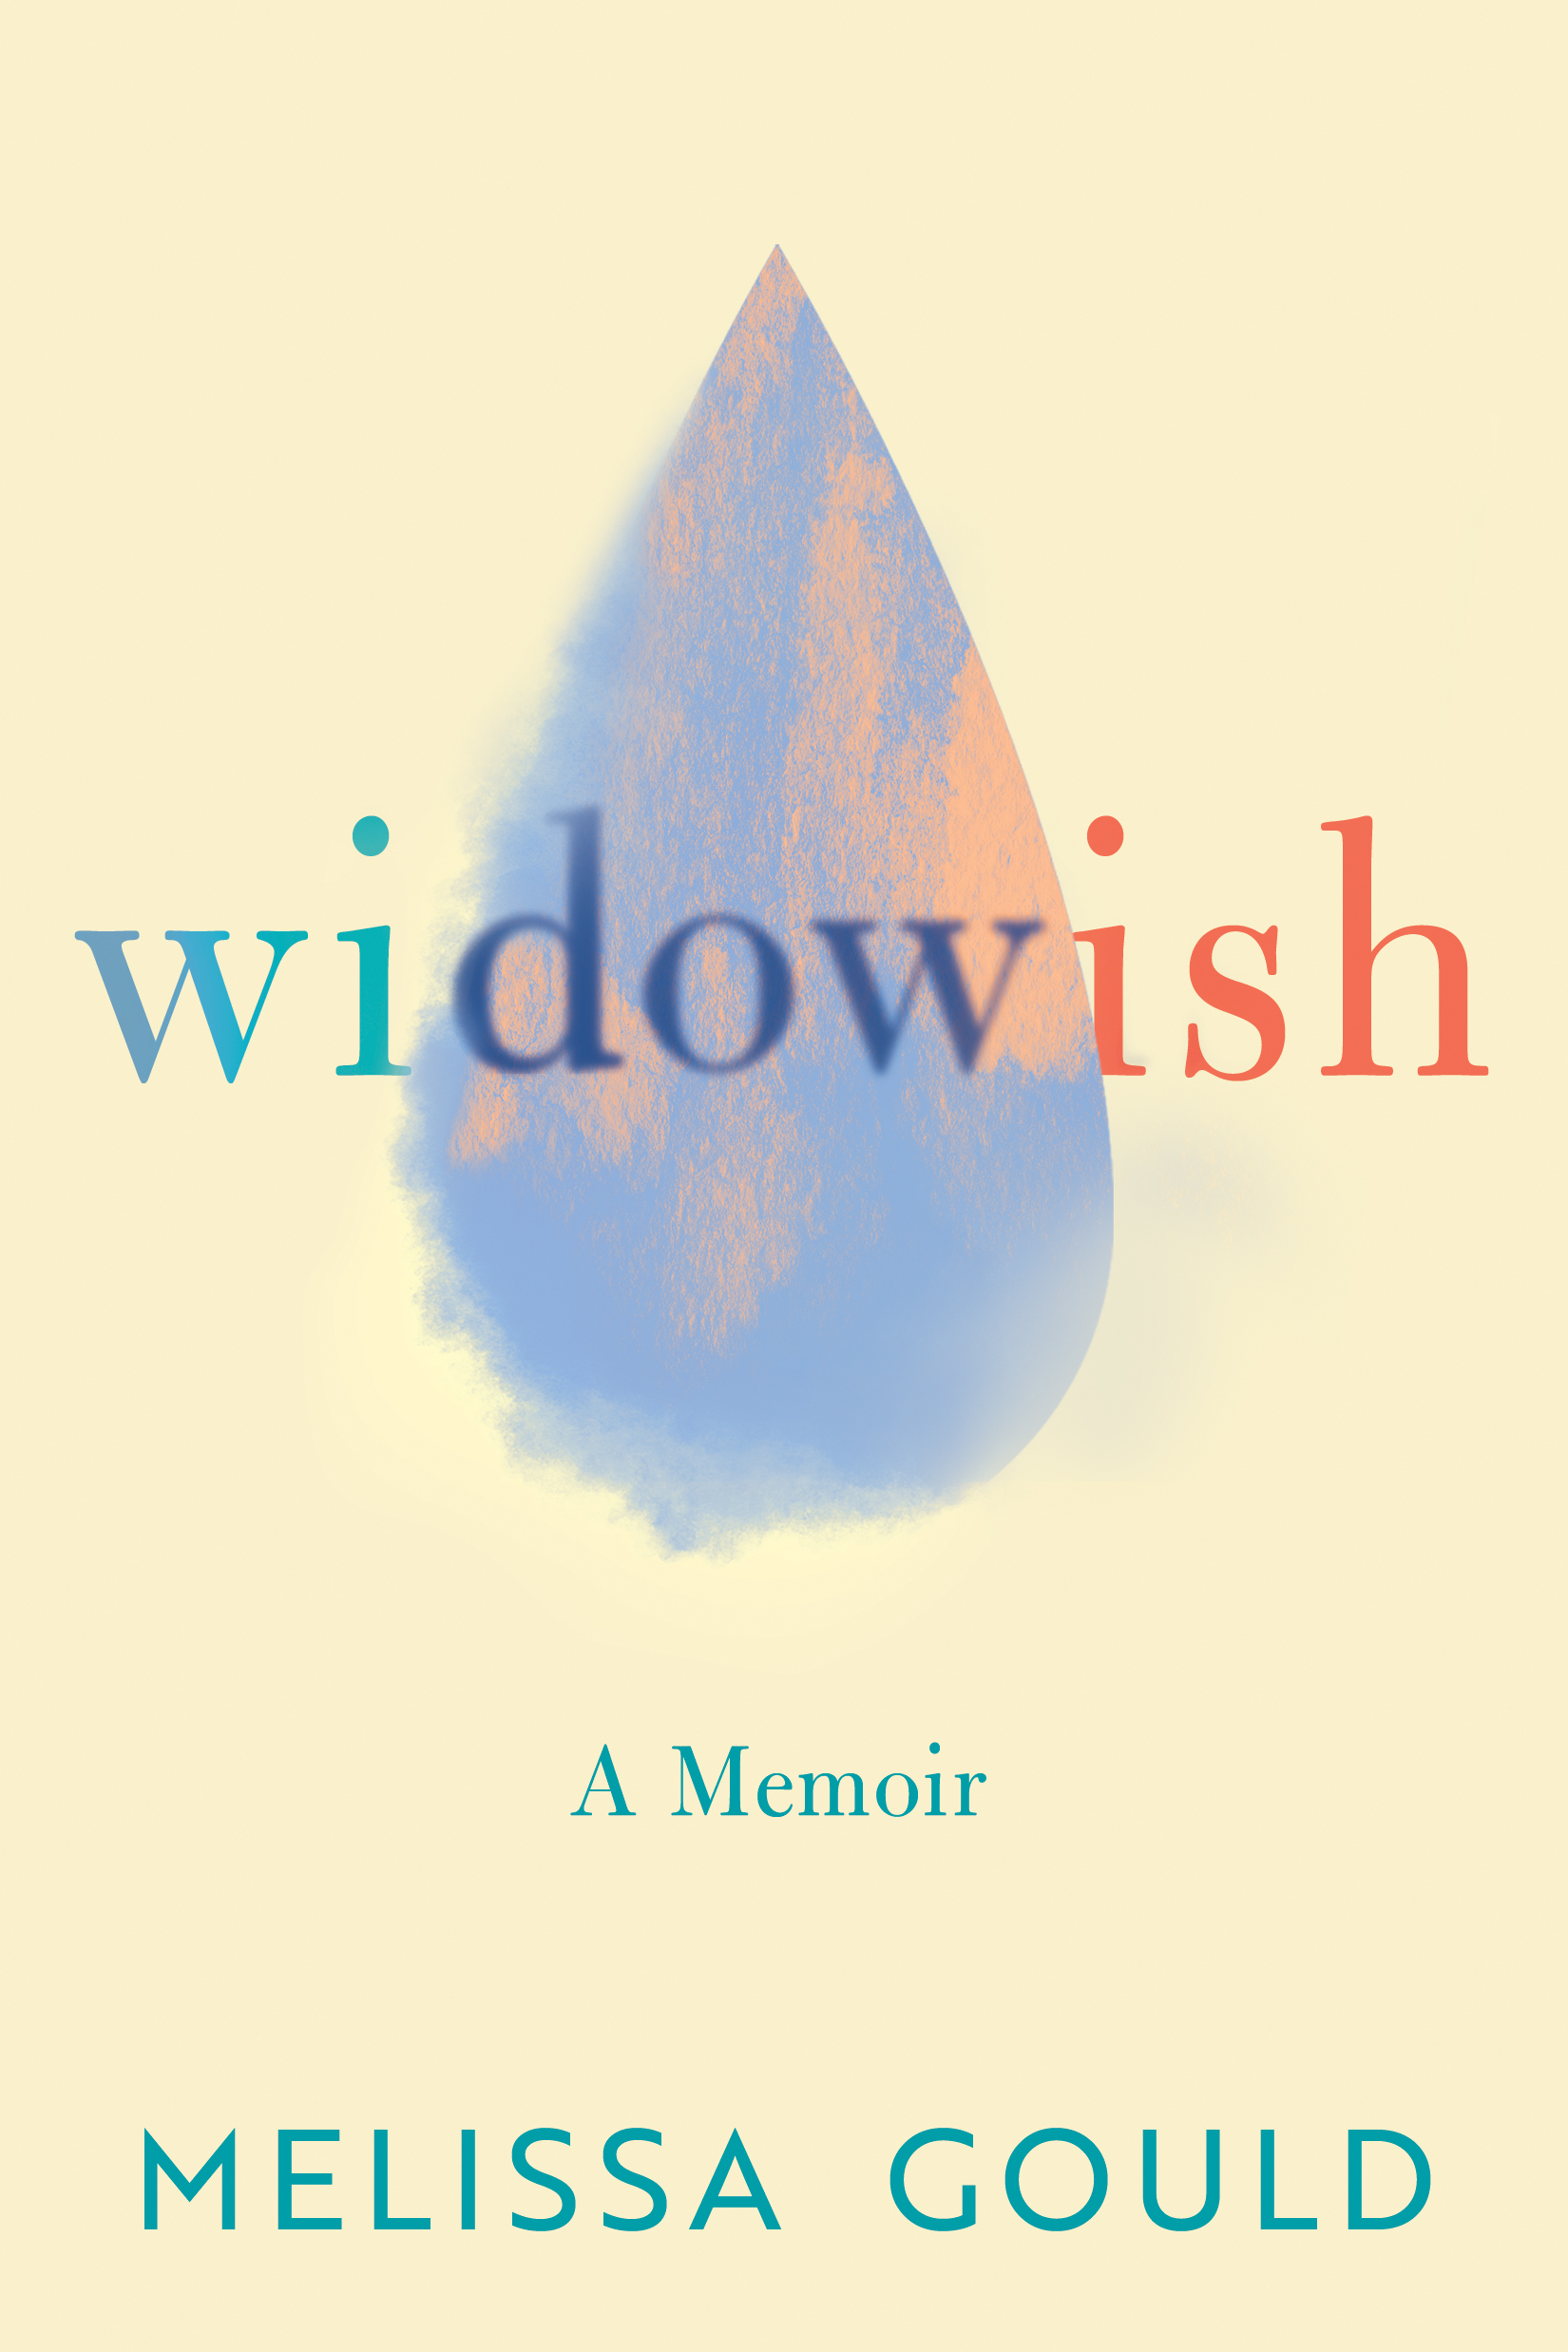 Virtual Book Launch: Widowish by Melissa Gould in conversation with Robin Finn